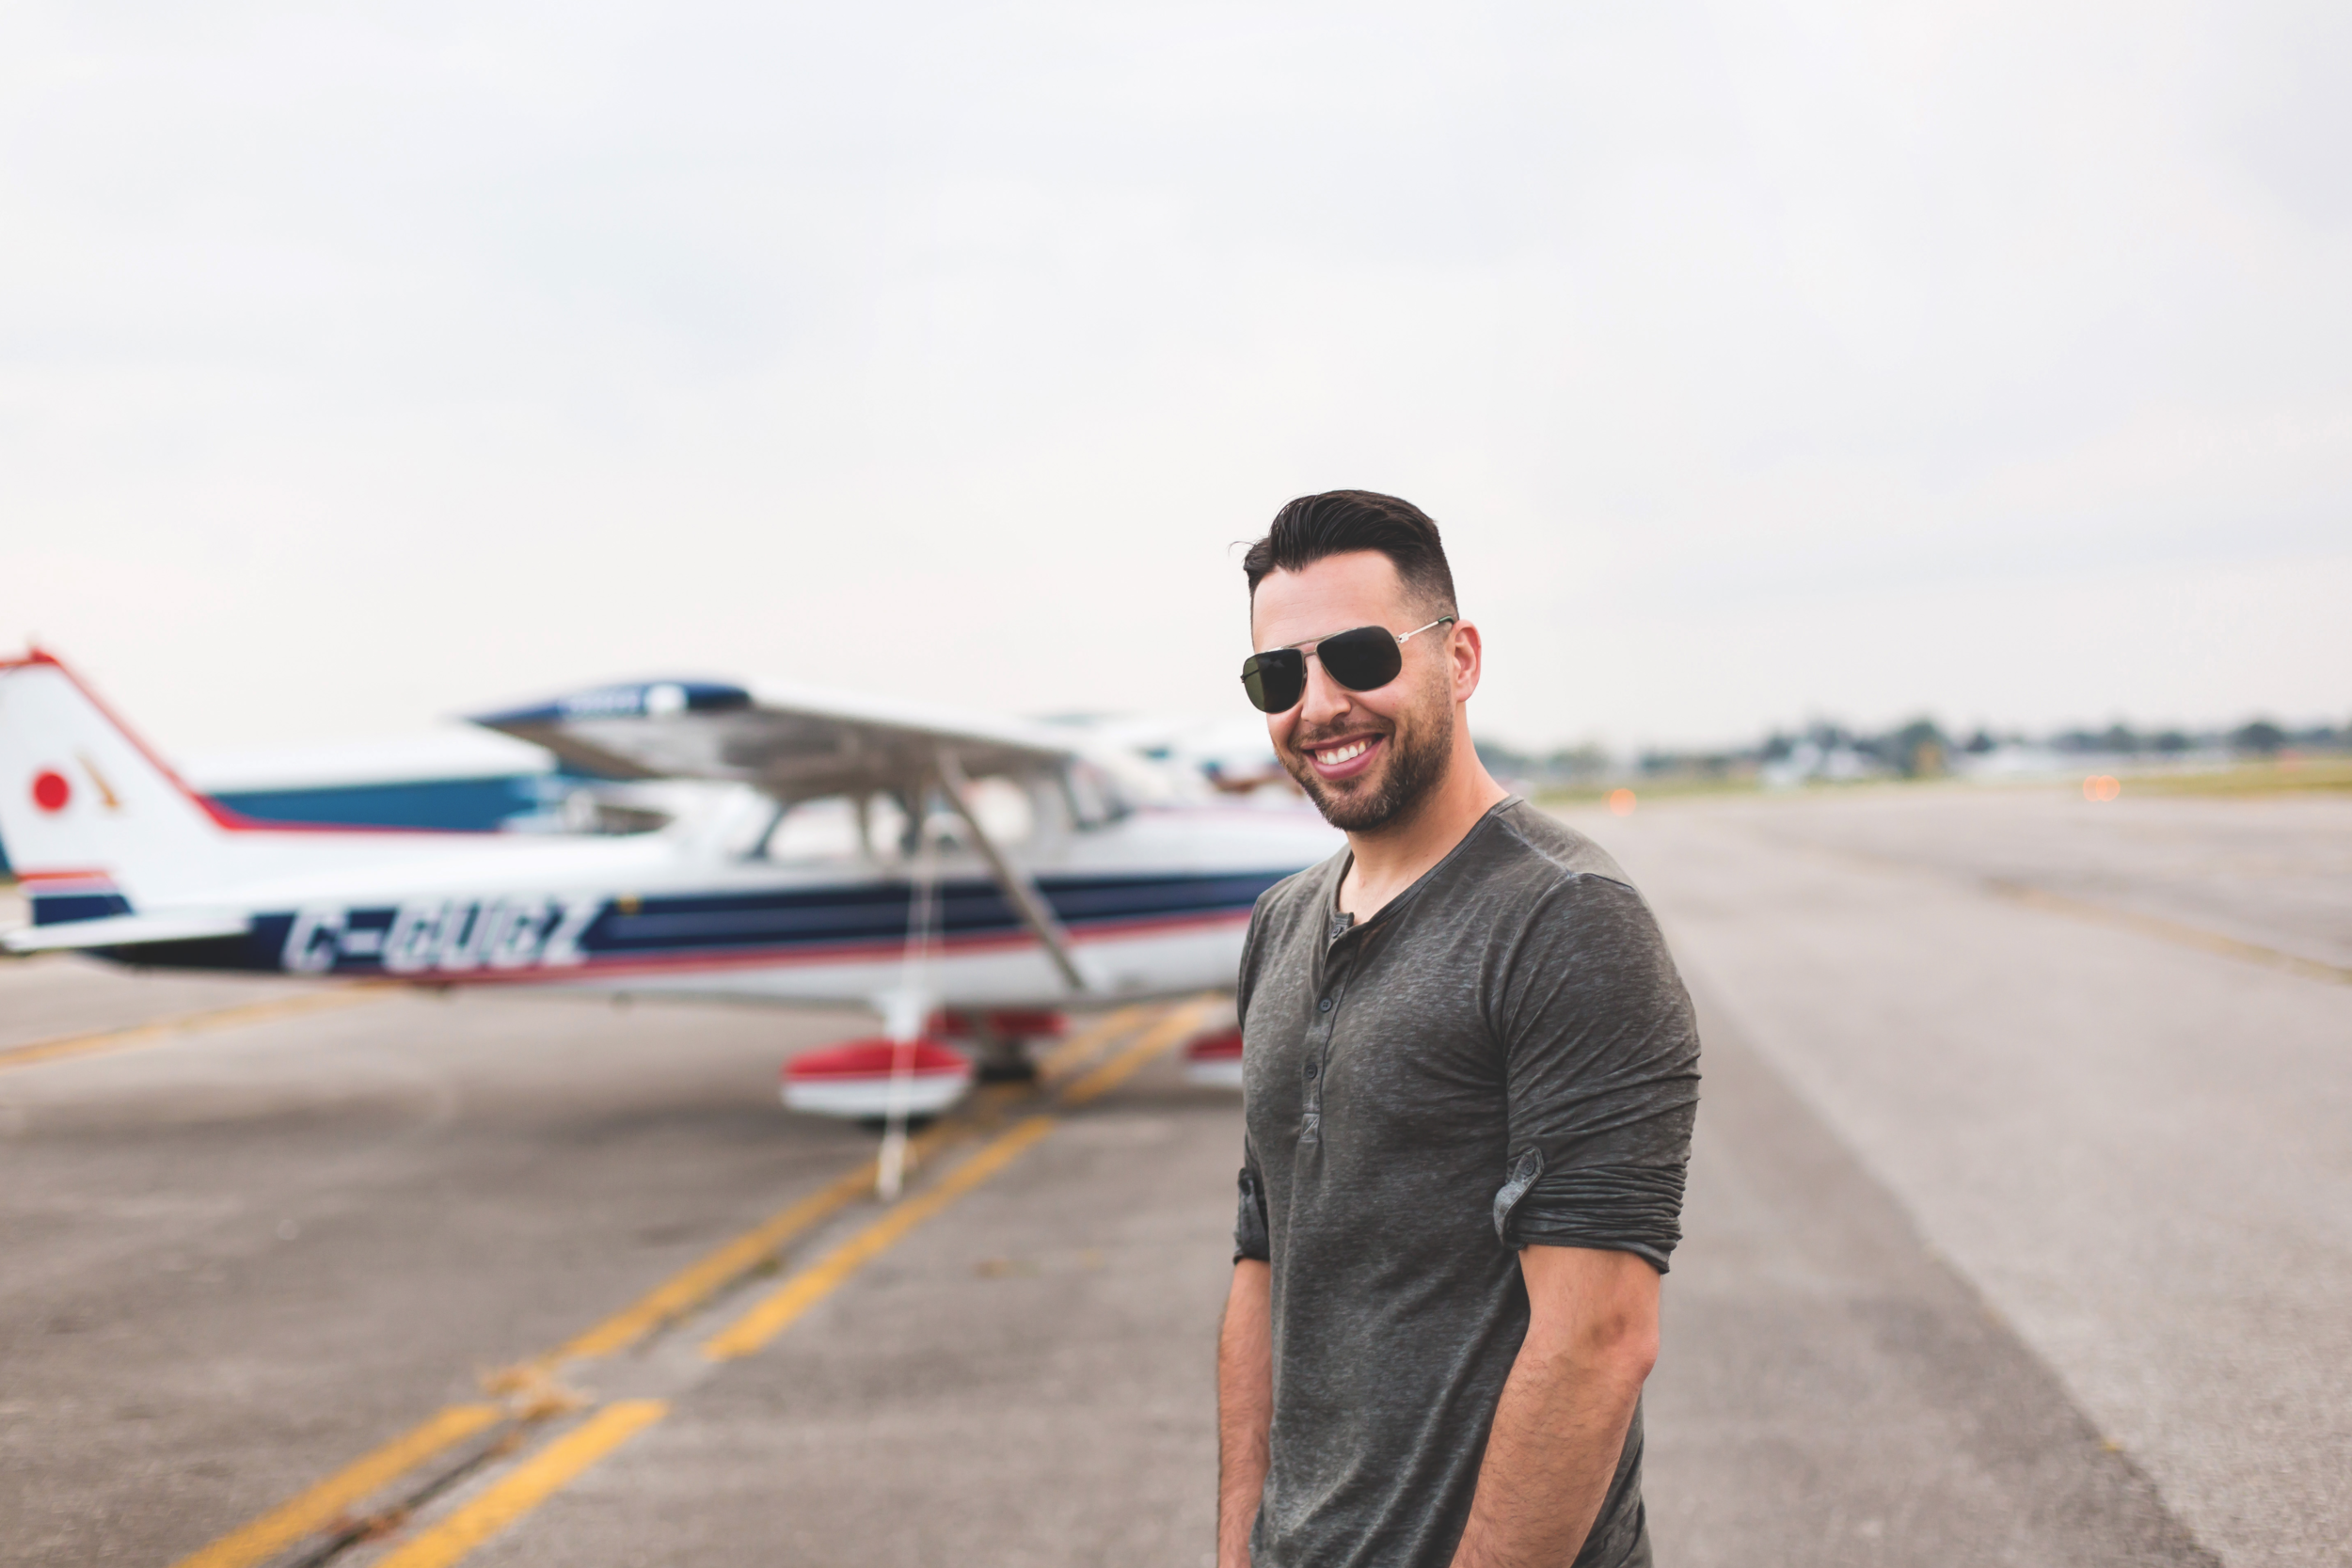 Engagement-Session-Hamilton-Burlington-Oakville-Toronto-Niagara-Wedding-Photographer-Engaged-Photography-Brantford-Airport-HamOnt-Engaged-Moments-by-Lauren-Photo-Image-29.png